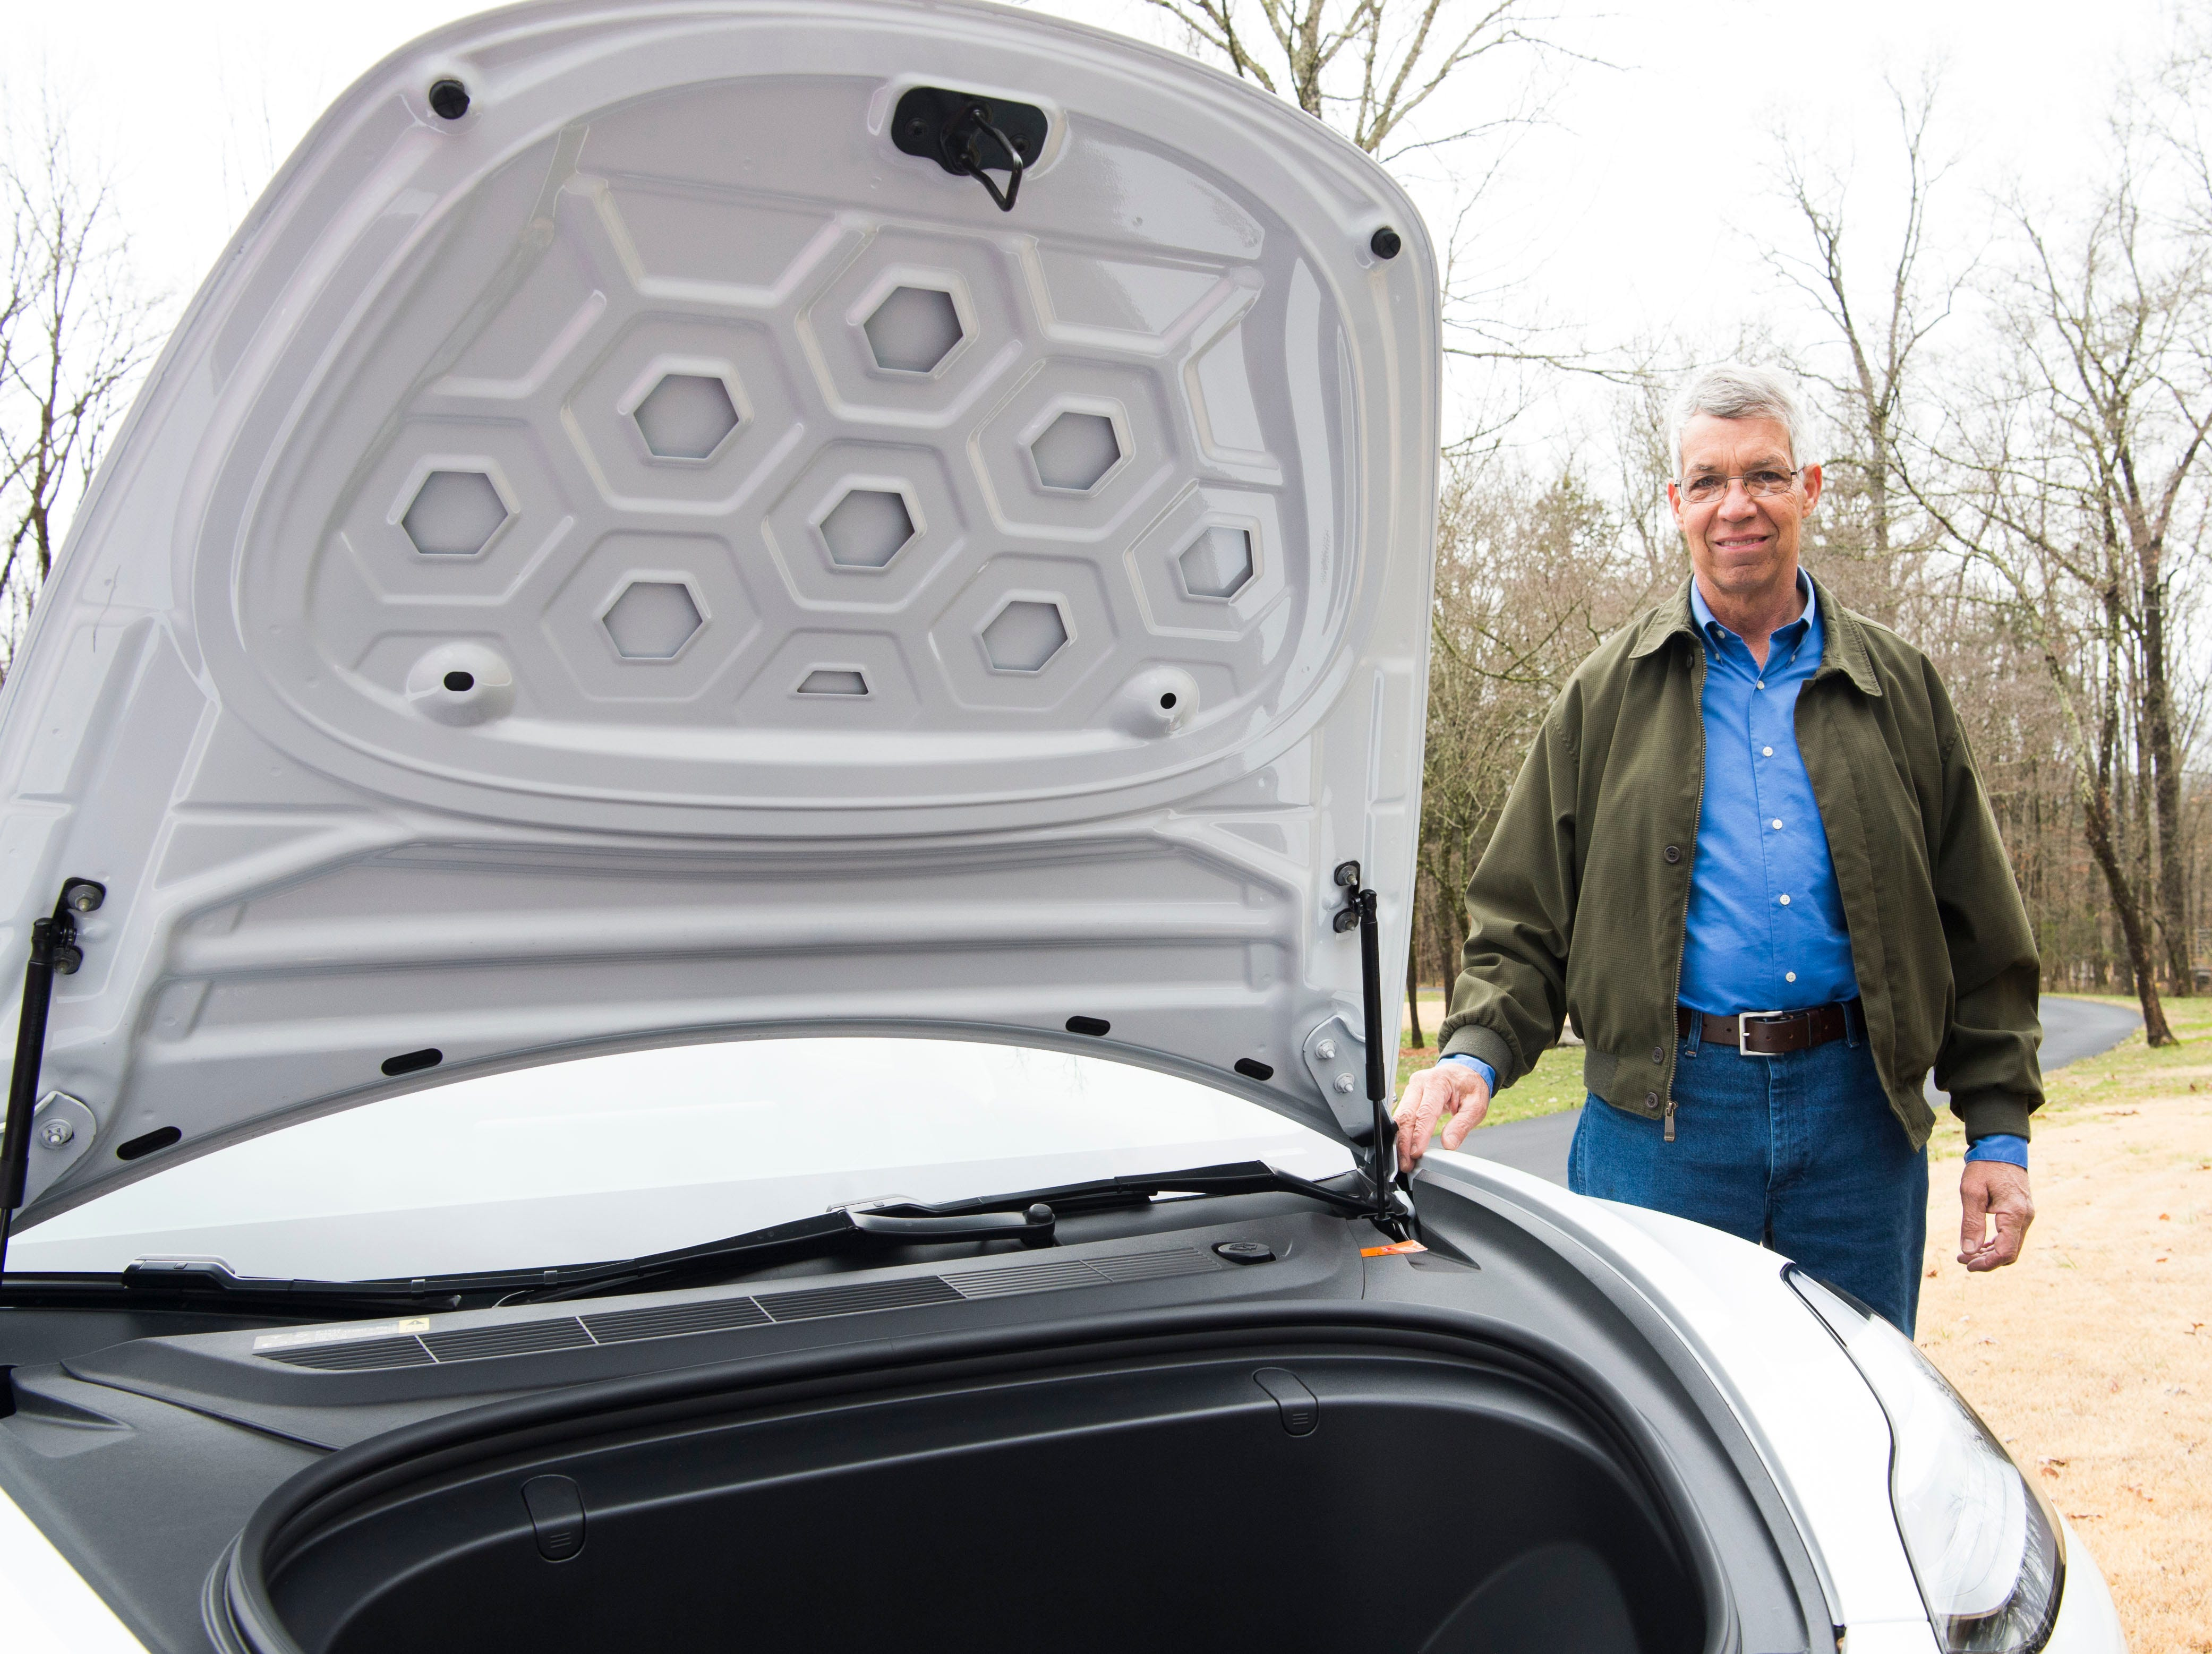 Mark Bishop stands next to his Tesla Model 3, which has has storage where a traditional motor would be, at his Clinton home Saturday, Feb. 16, 2019.